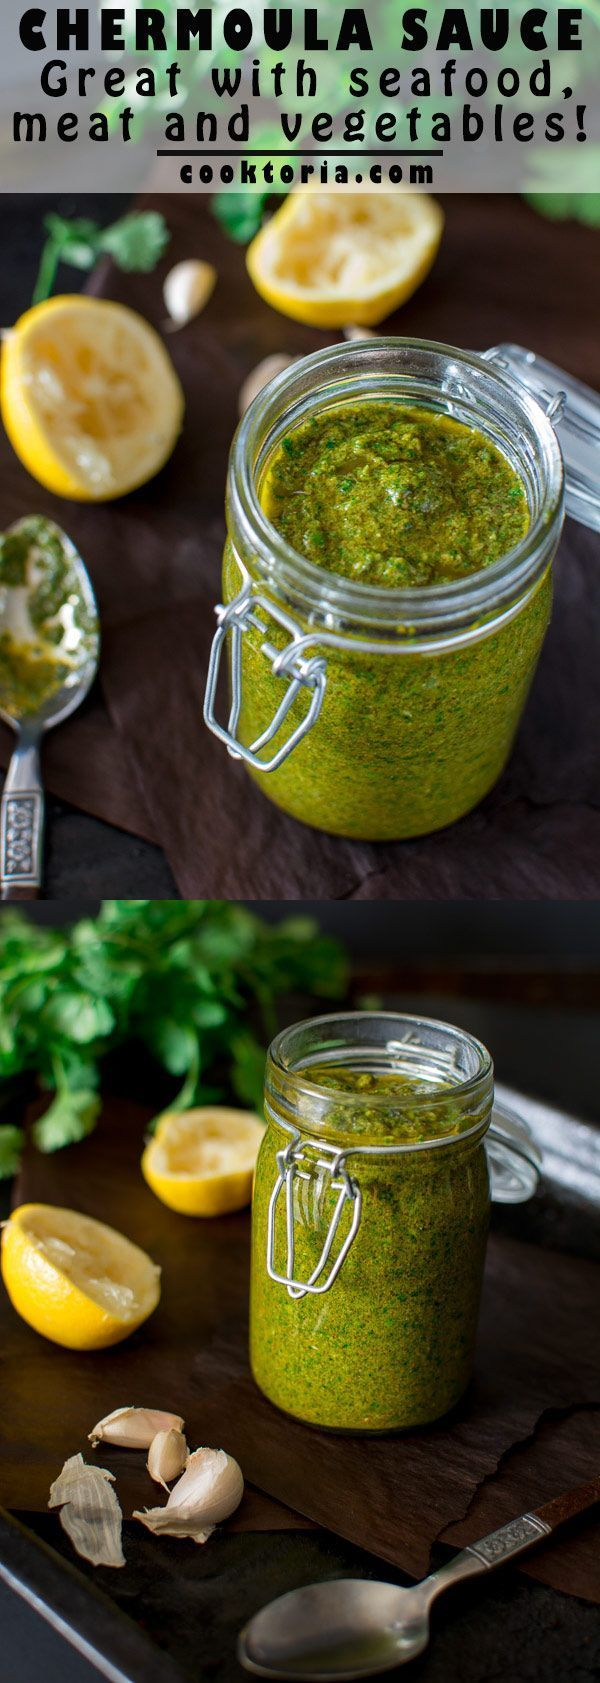 This oh-so-flavorful and tangy Moroccan Chermoula Sauce will serve as a healthy addition to your seafood, chicken and vegetable dishes. :heart: http://COOKTORIA.COM